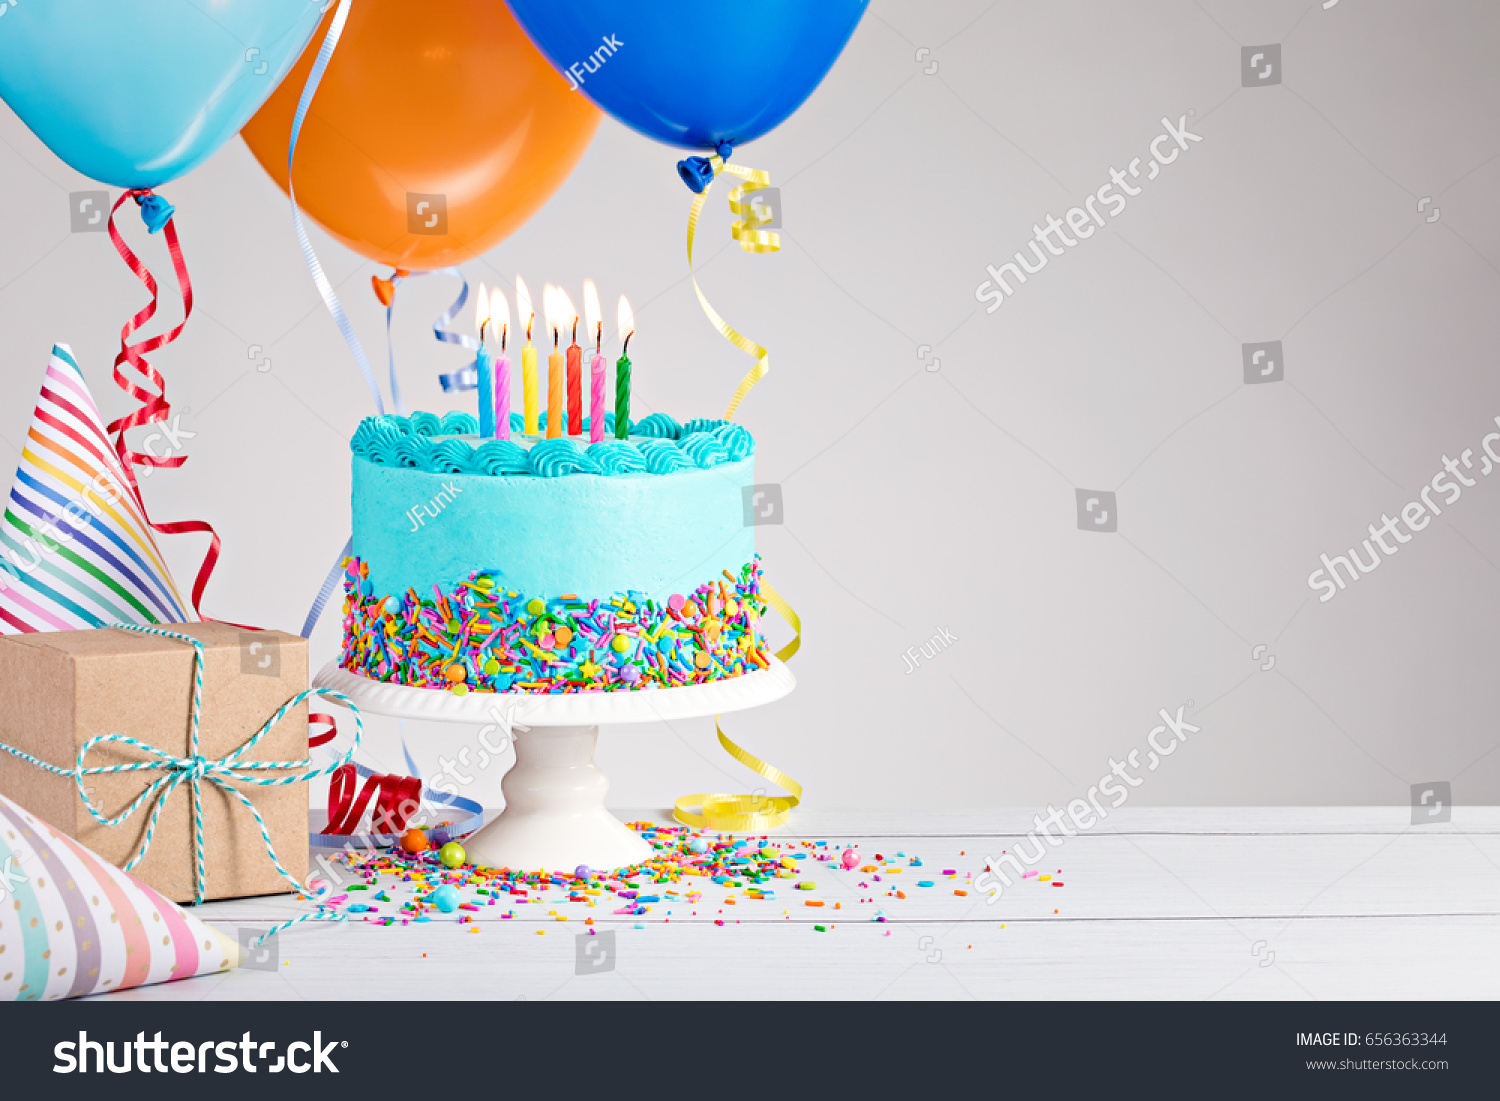 Balloon Birthday Cake Blue Birthday Cake Presents Hats Colorful Stockfoto Jetzt